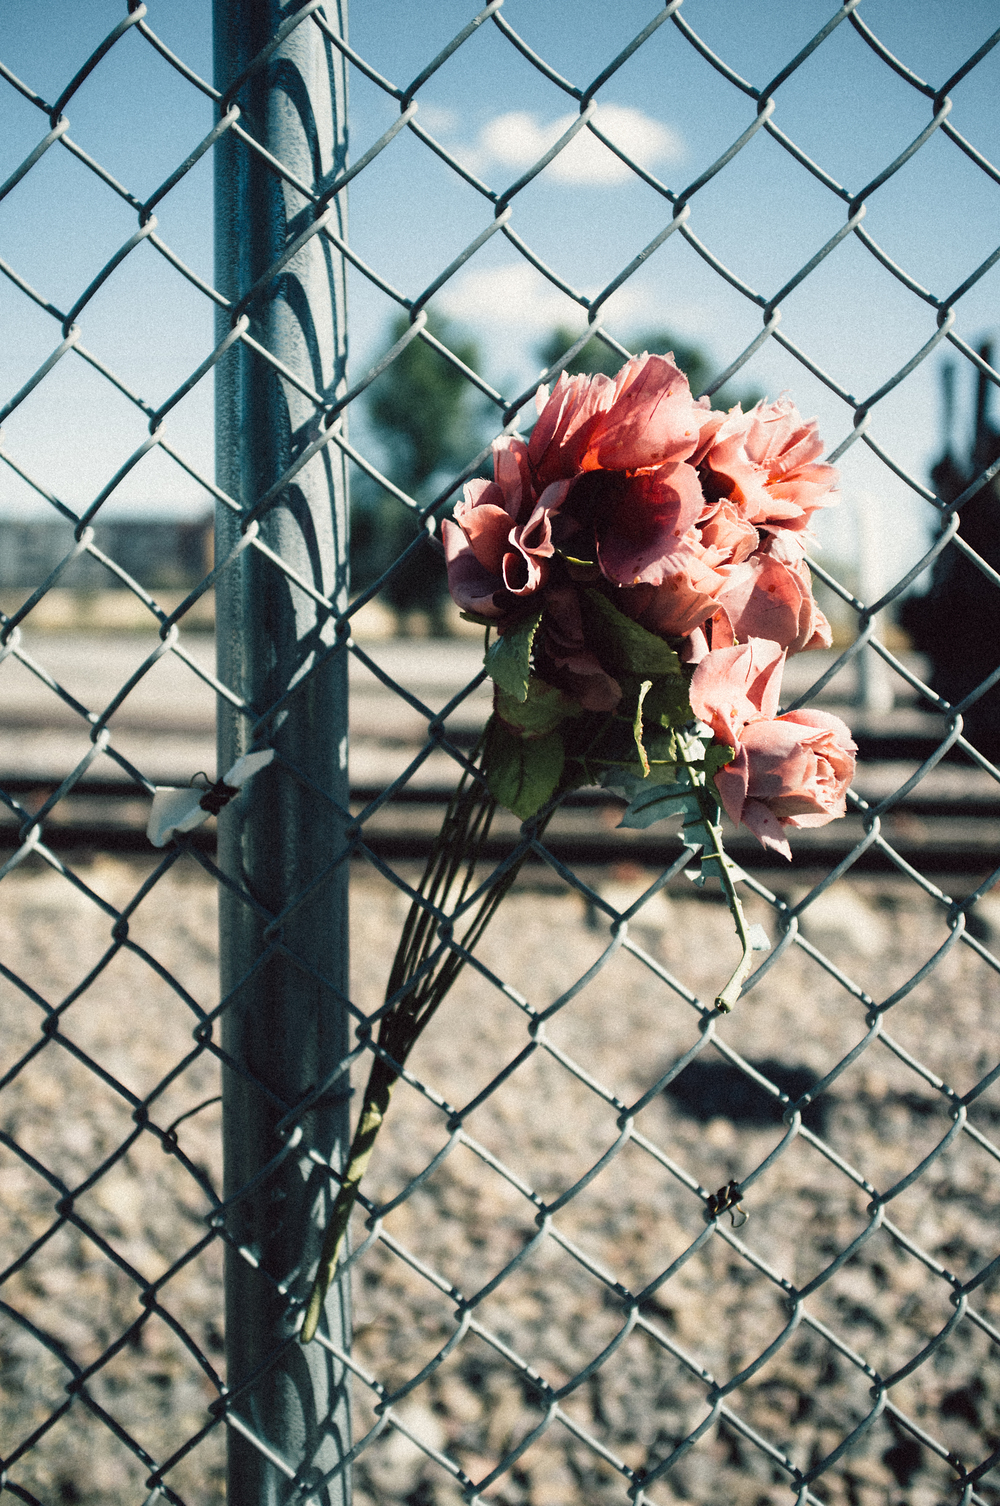 Train Yard Flowers.jpg